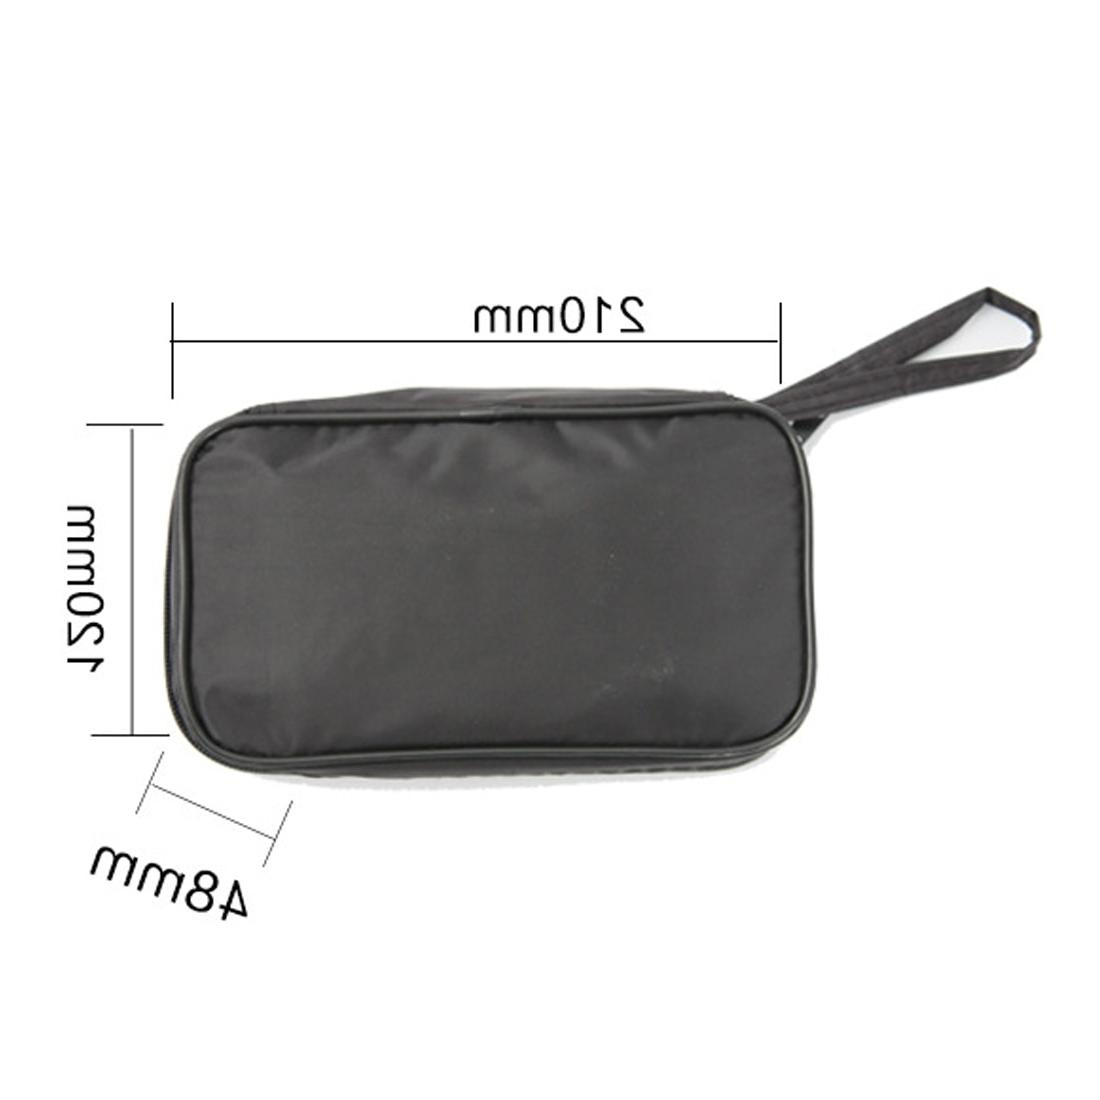 Durable Digital Multimeter Cloth <font><b>Bag</b></font> Waterproof <font><b>Bag</b></font> Multimeter Black <font><b>Bag</b></font> Series